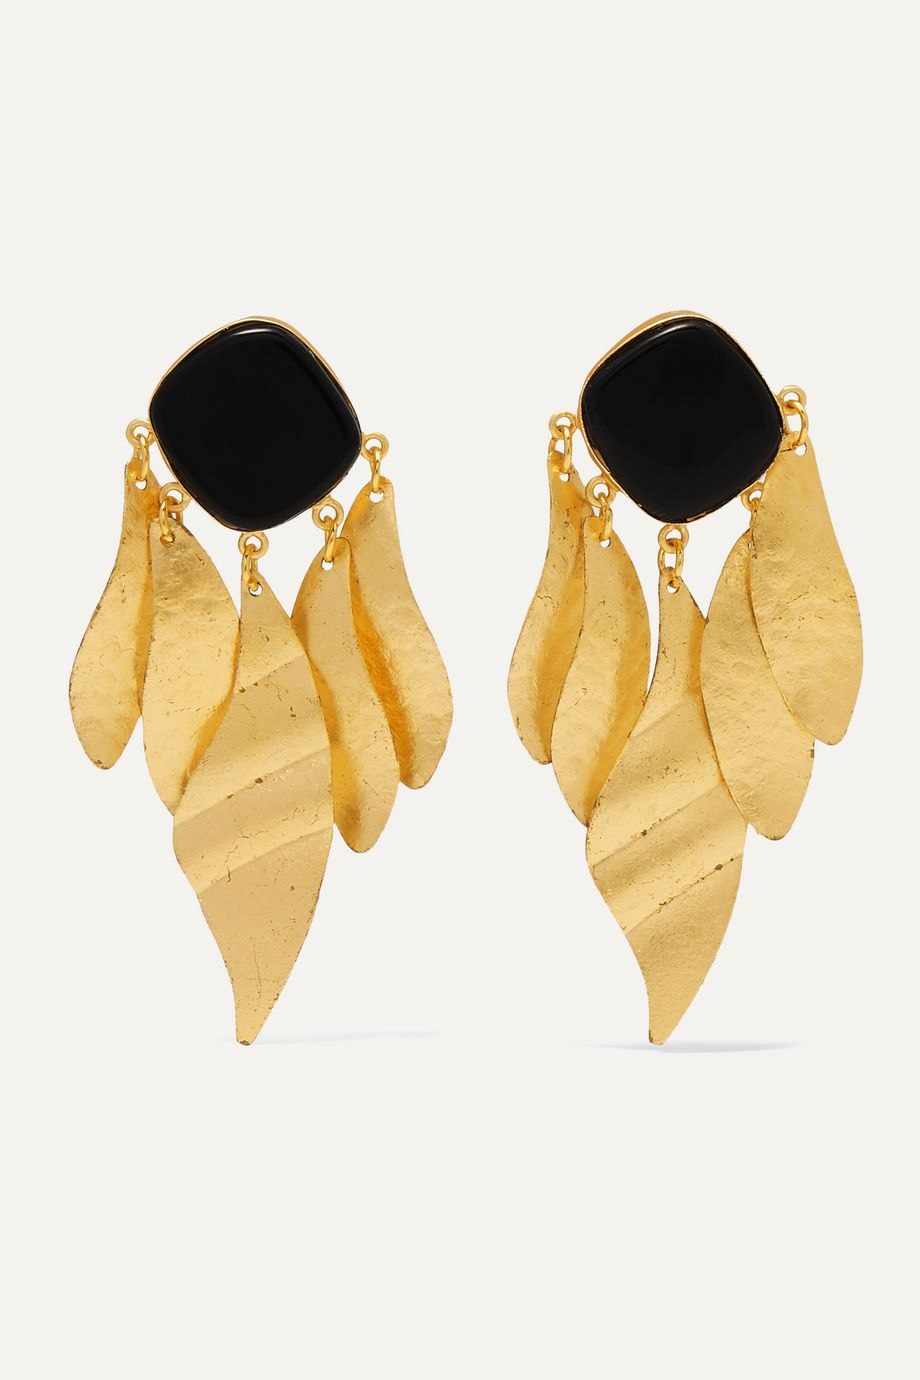 Peet Dullaert Indra gold-plated onyx earrings